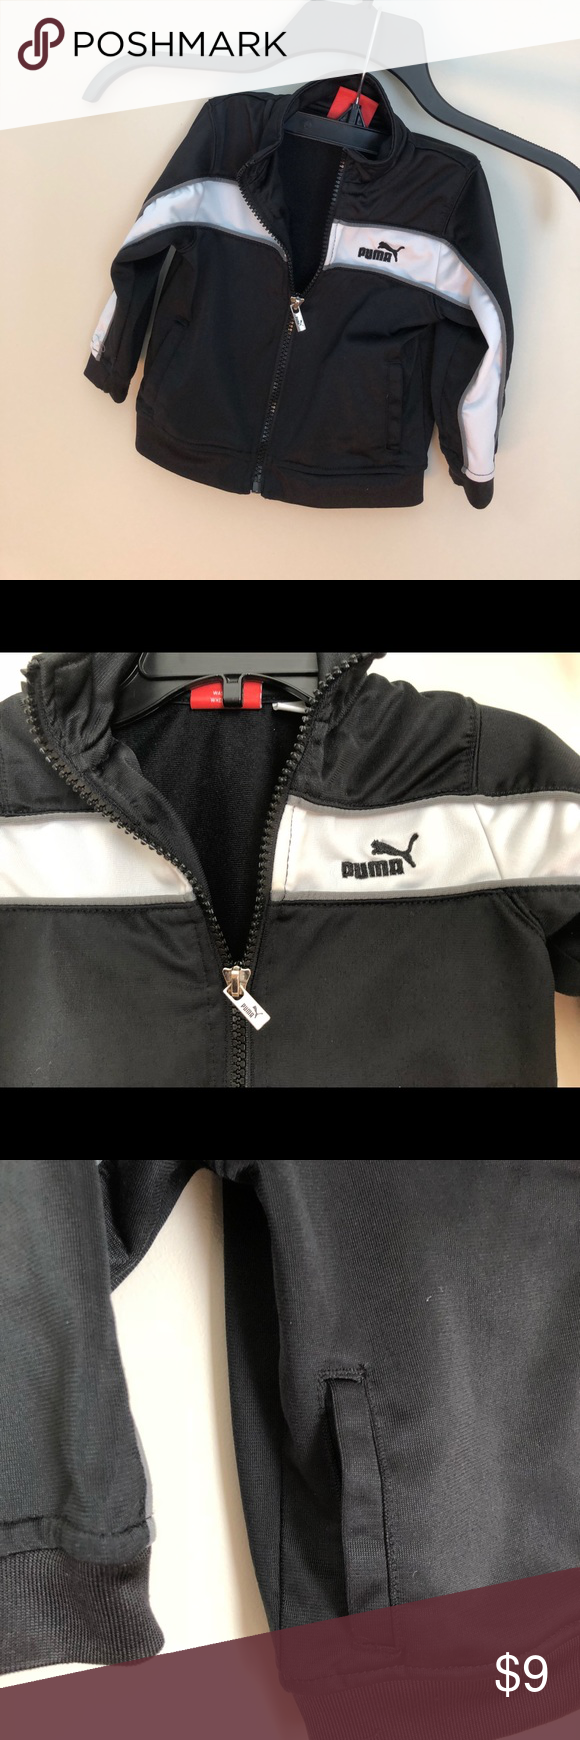 e6d8efdd613a Puma Toddler Boys 3T Light Jacket Pockets on side. Gently used. Great  condition Jackets   Coats